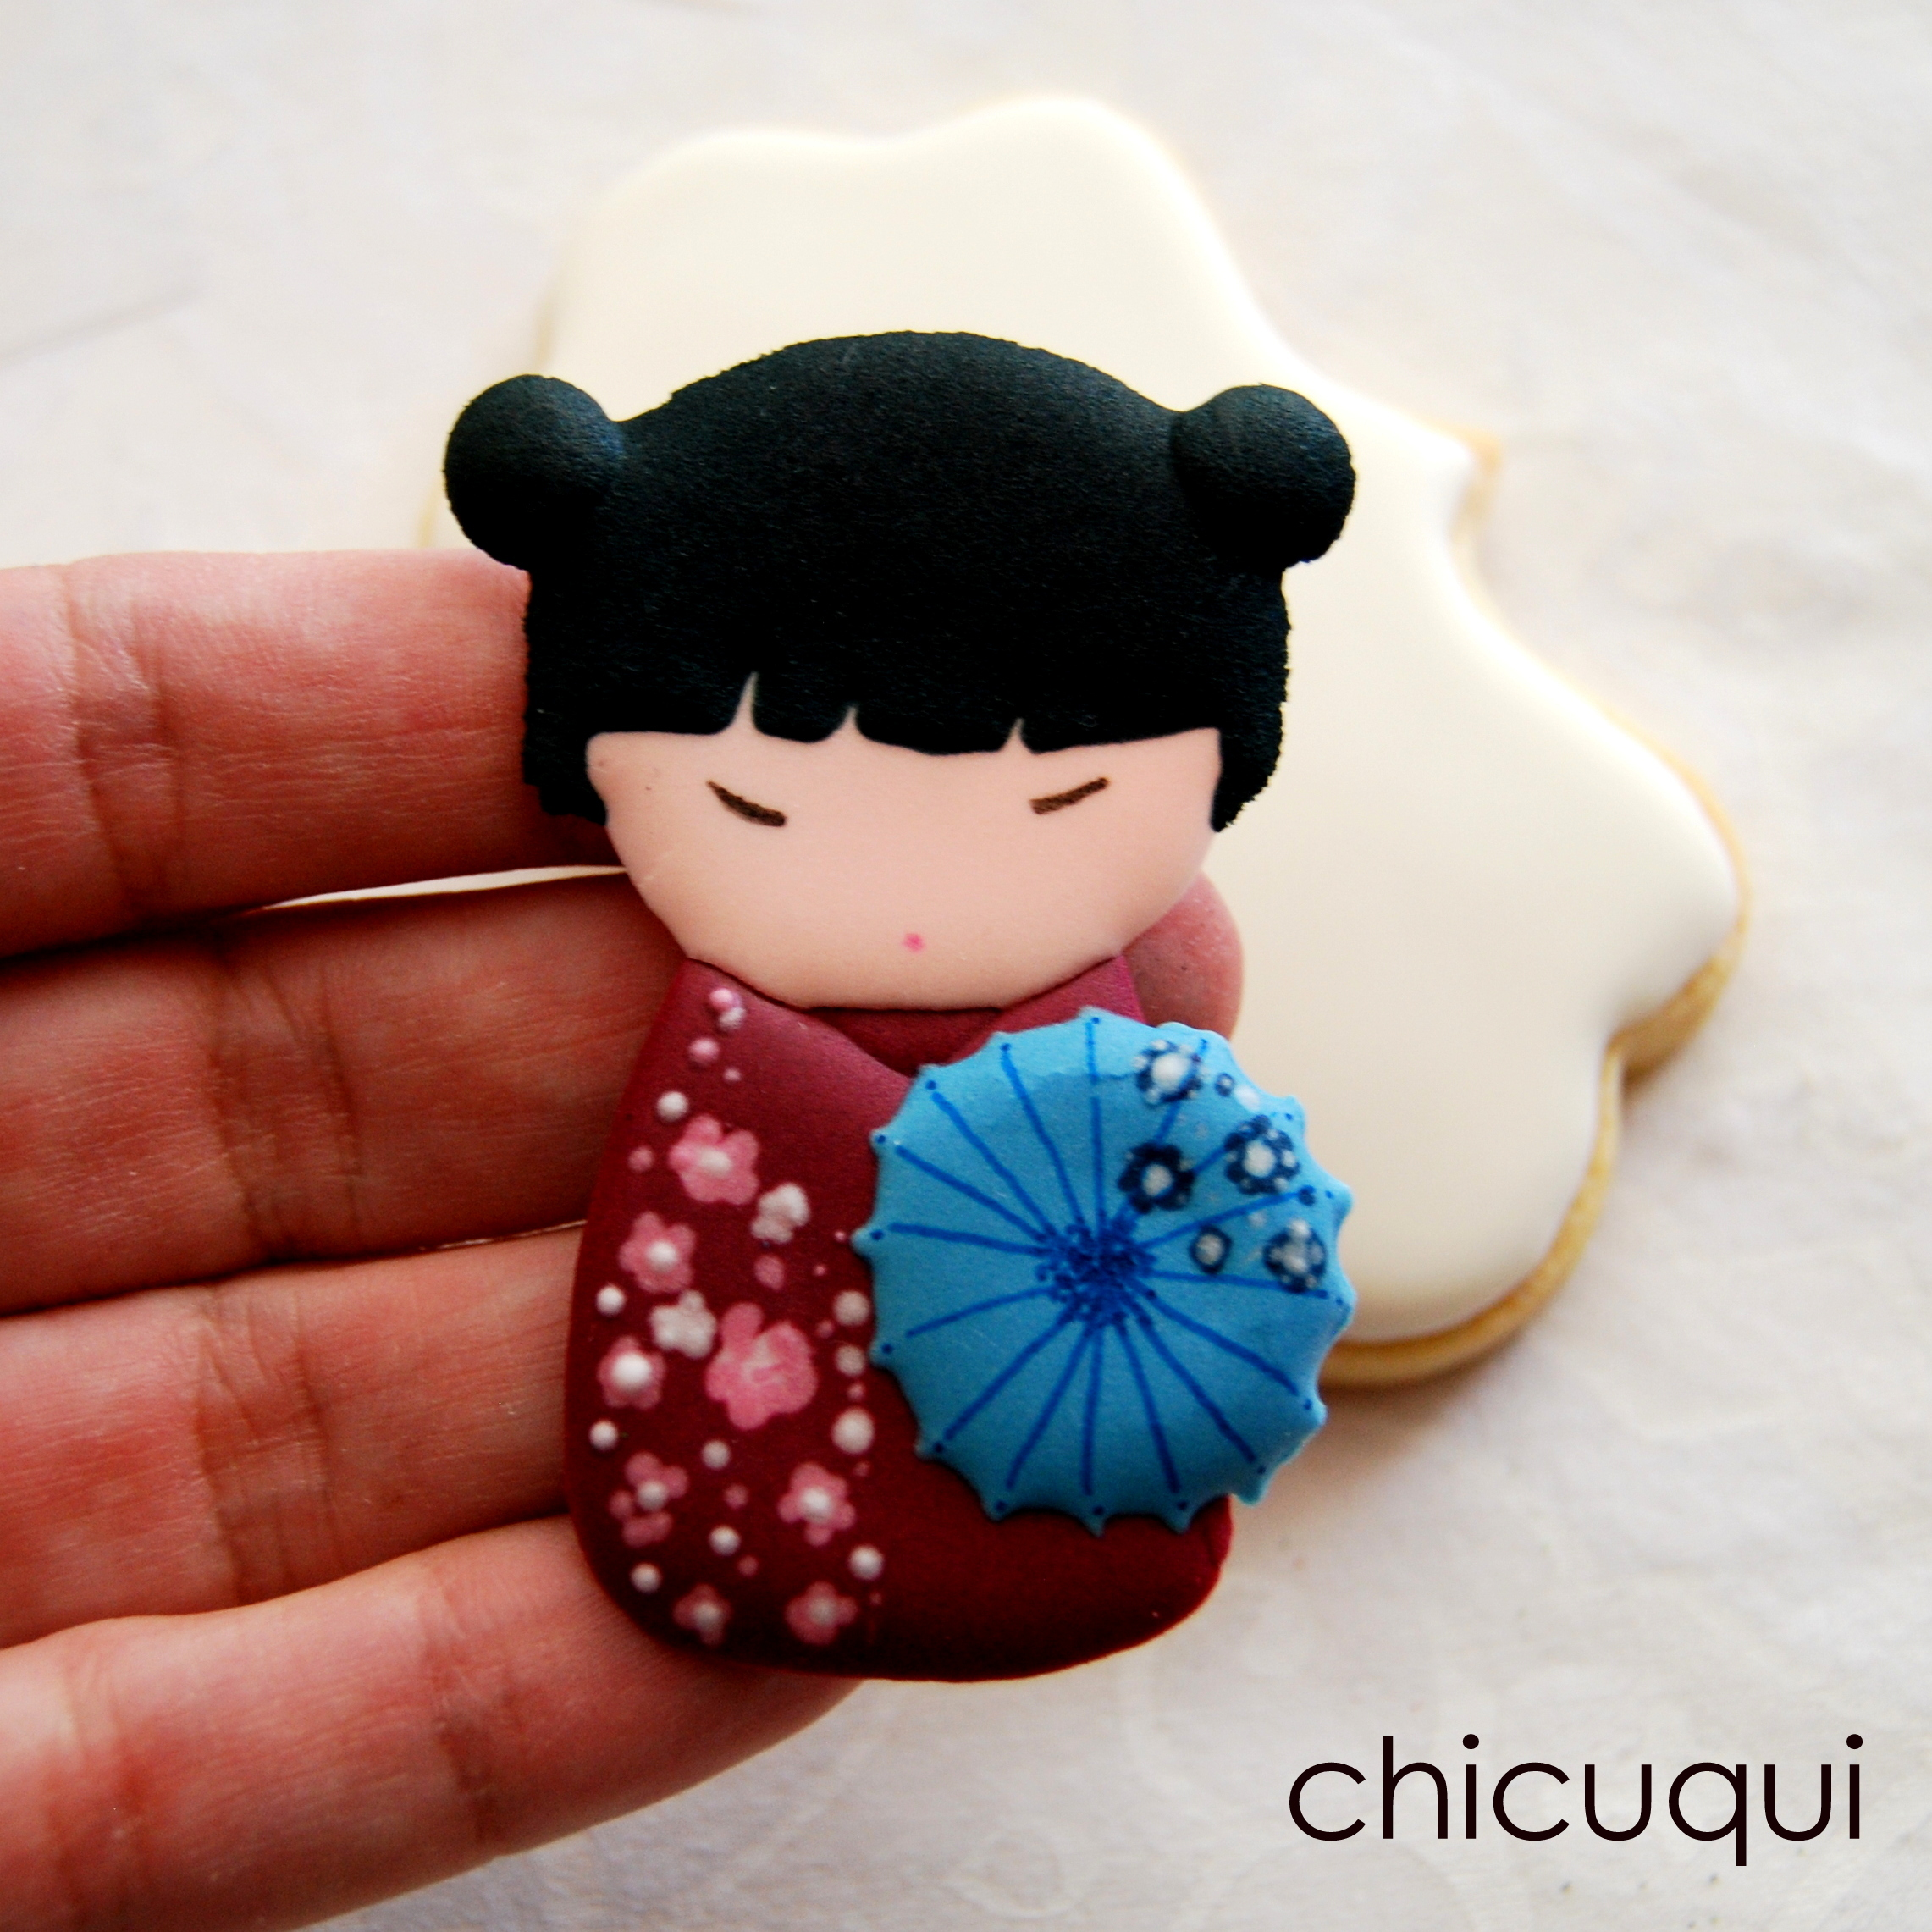 Galletas Decoradas Con Glasa Paso A Paso Muñecas Chinas, En Galletas Decoradas | Chicuqui